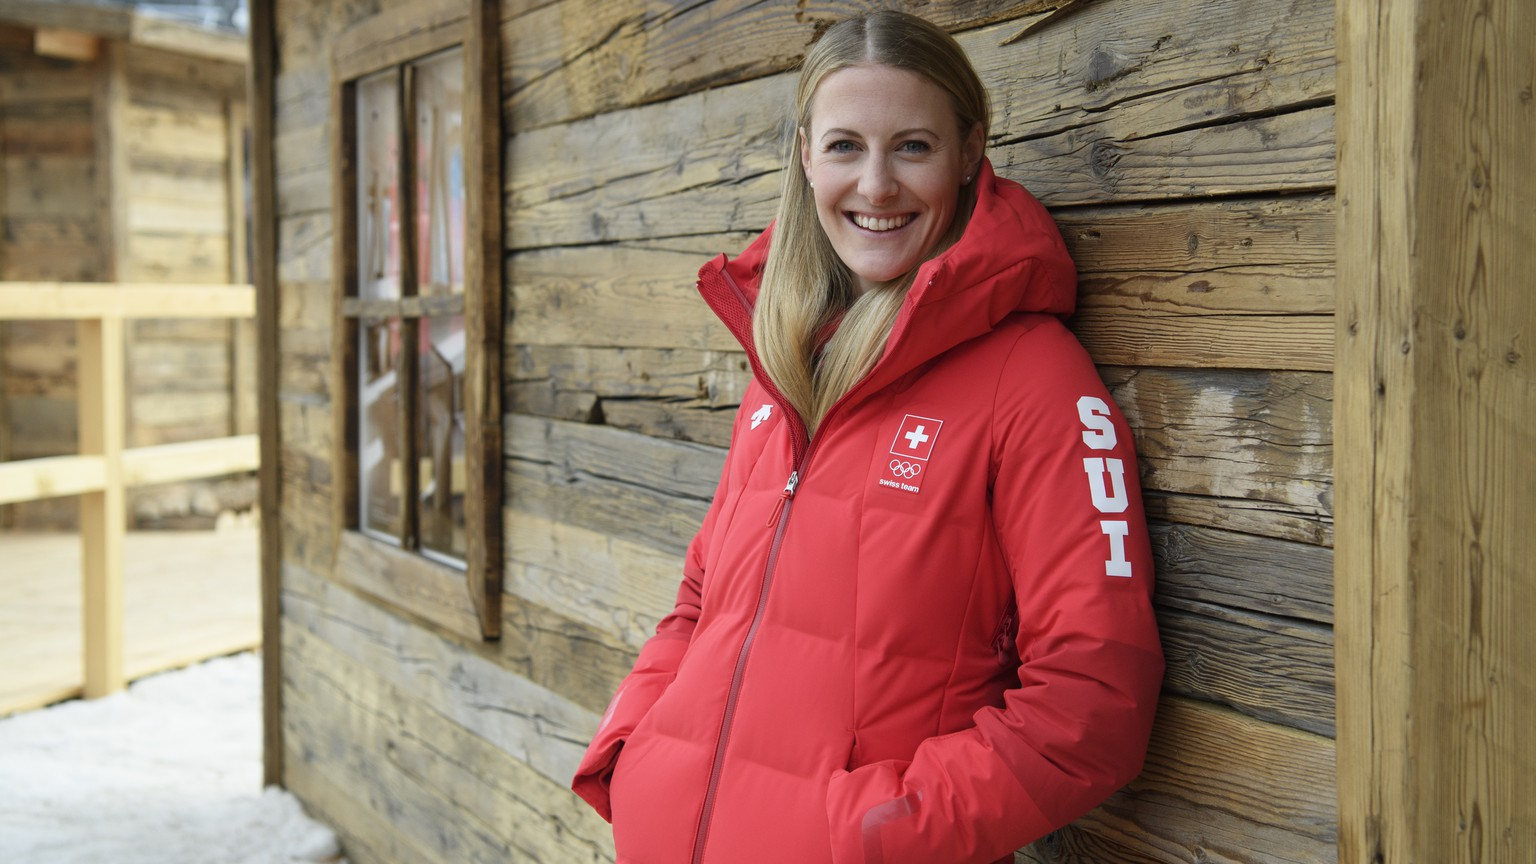 Fanny Smith of Switzerland poses during a media conference of the Swiss Ski Cross team in the House of Switzerland during the XXIII Winter Olympics 2018 in Pyeongchang, South Korea, on Monday, February 19, 2018. (KEYSTONE/Gian Ehrenzeller)